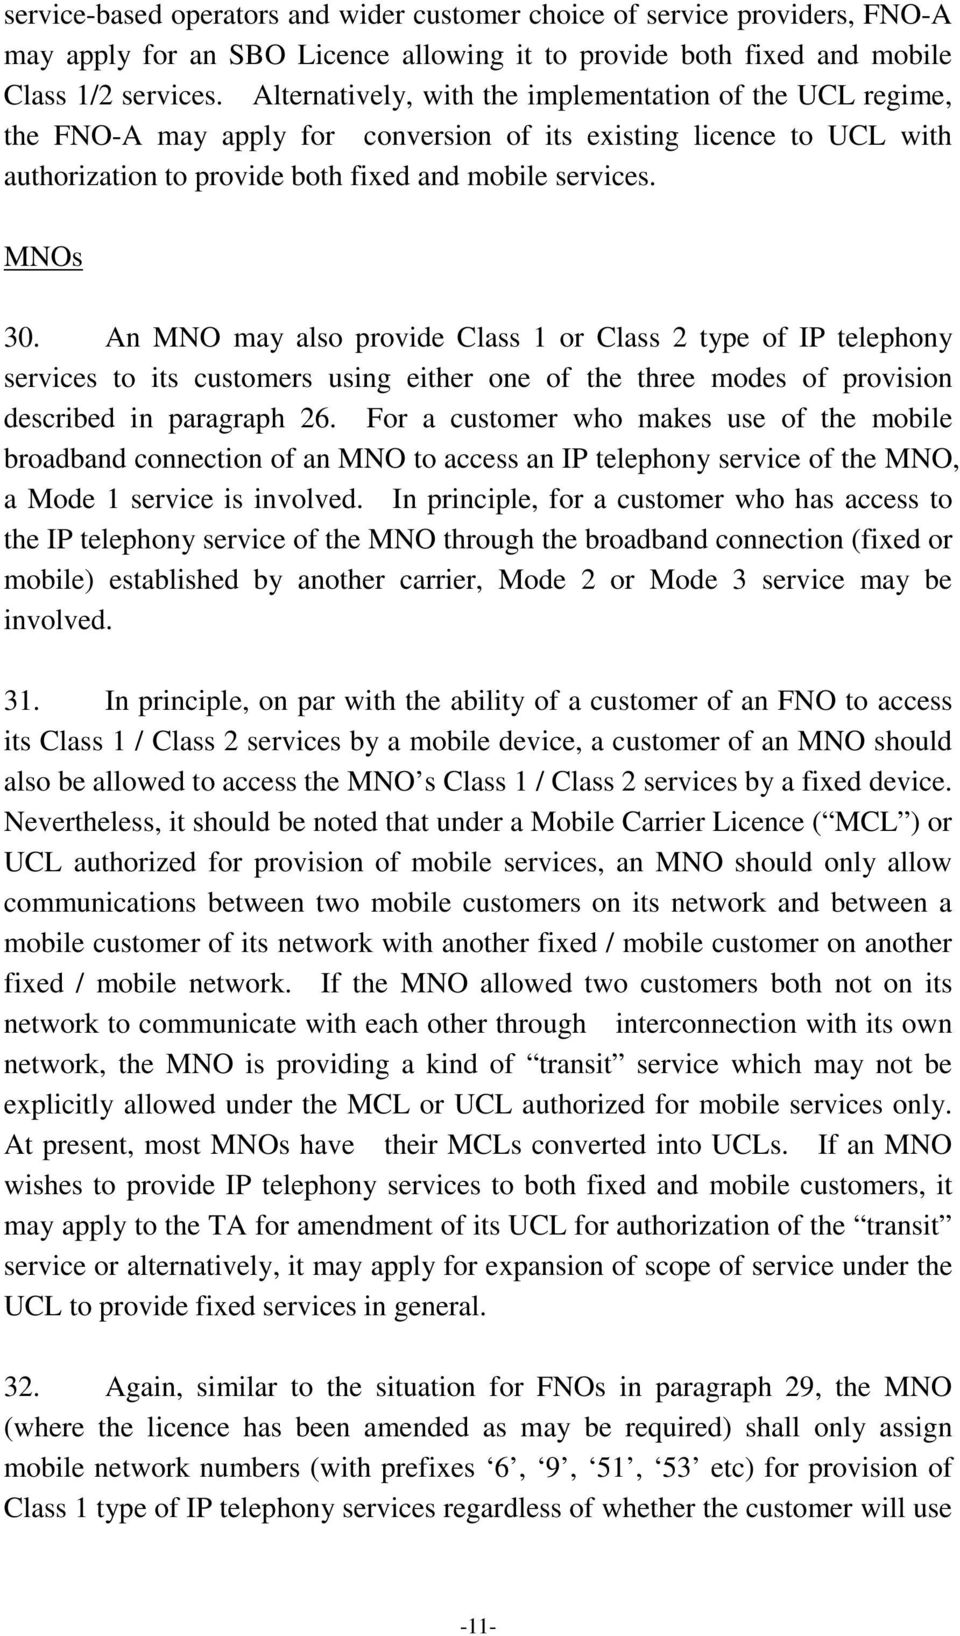 An MNO may also provide Class 1 or Class 2 type of IP telephony services to its customers using either one of the three modes of provision described in paragraph 26.